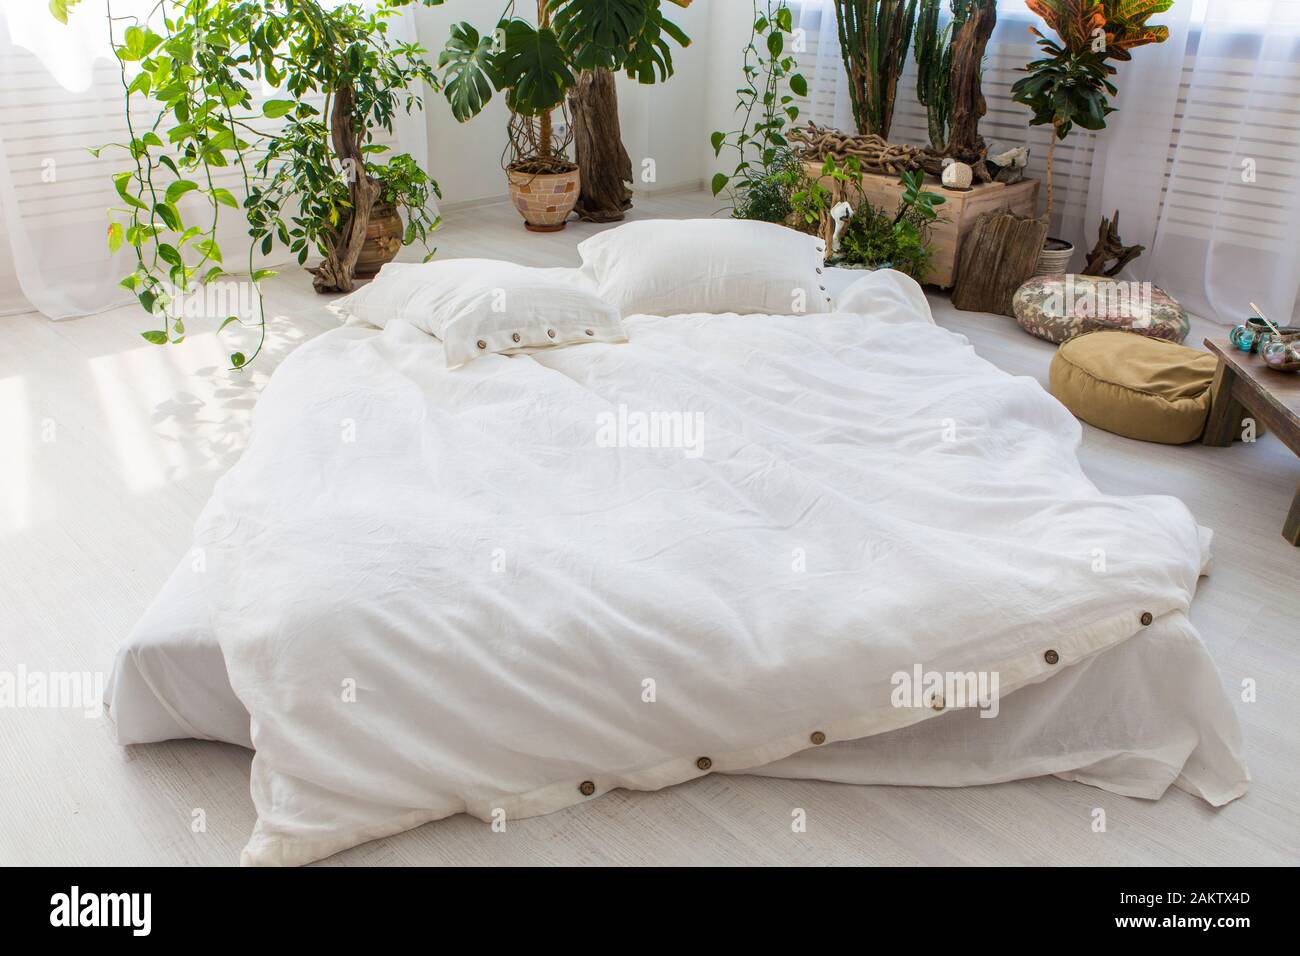 natural eco-friendly linen bed in the interior Stock Photo